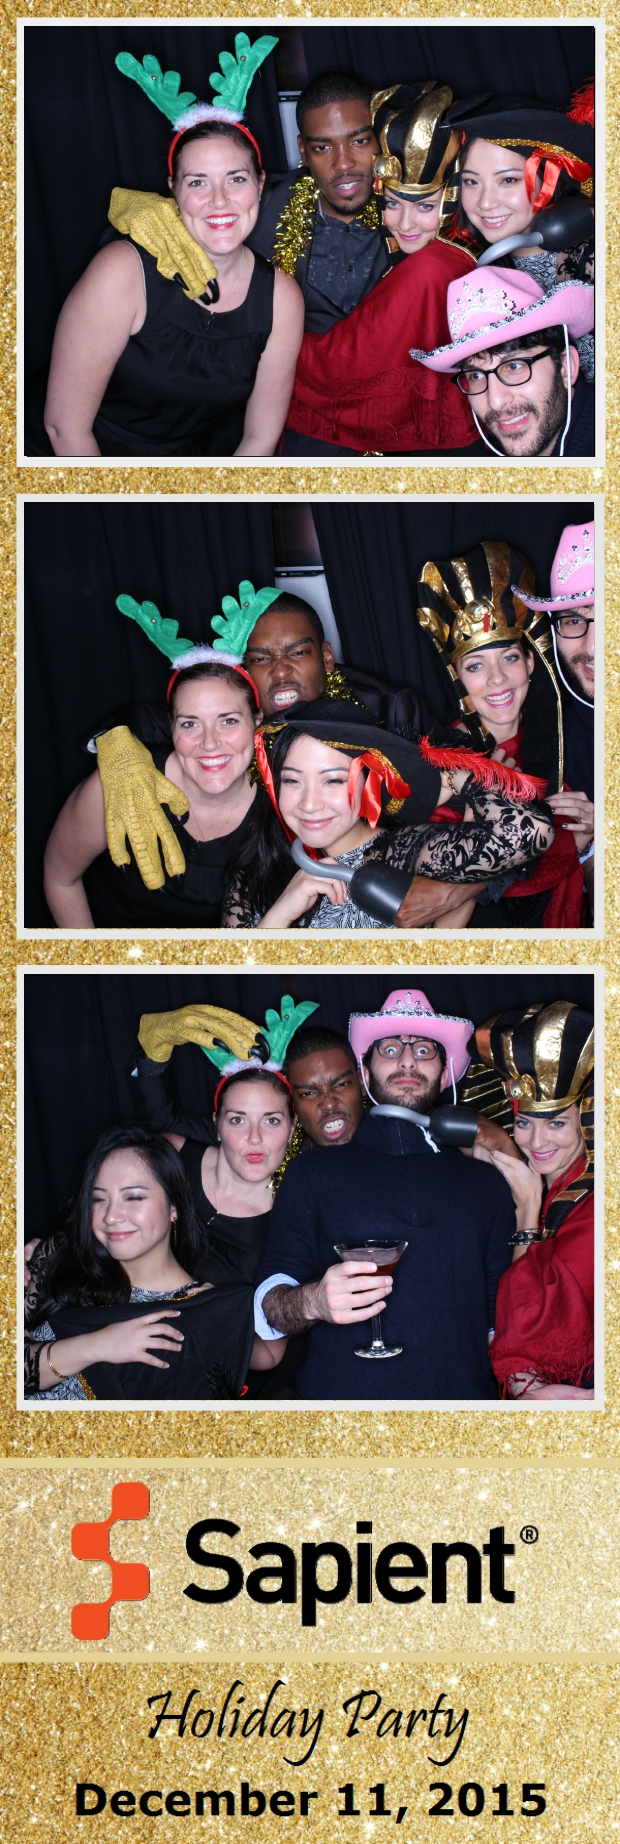 Guest House Events Photo Booth Sapient Holiday Party (80).jpg